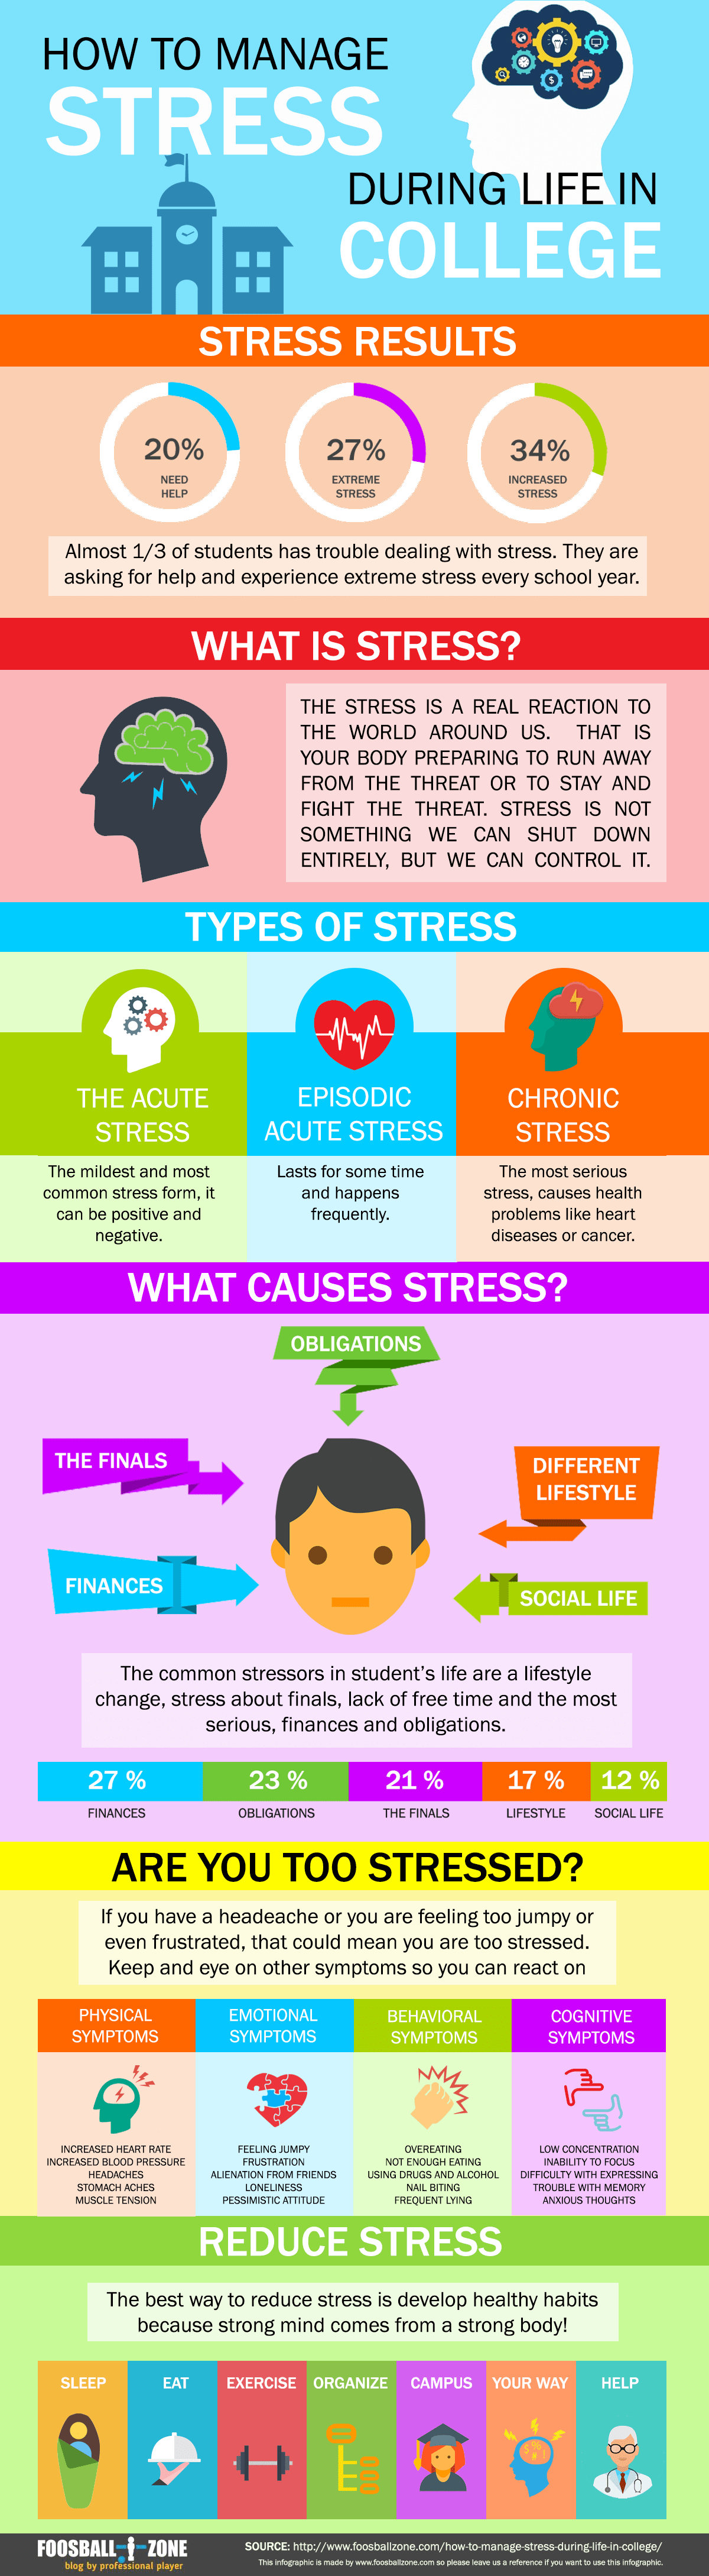 How to deal with stress in everyday life